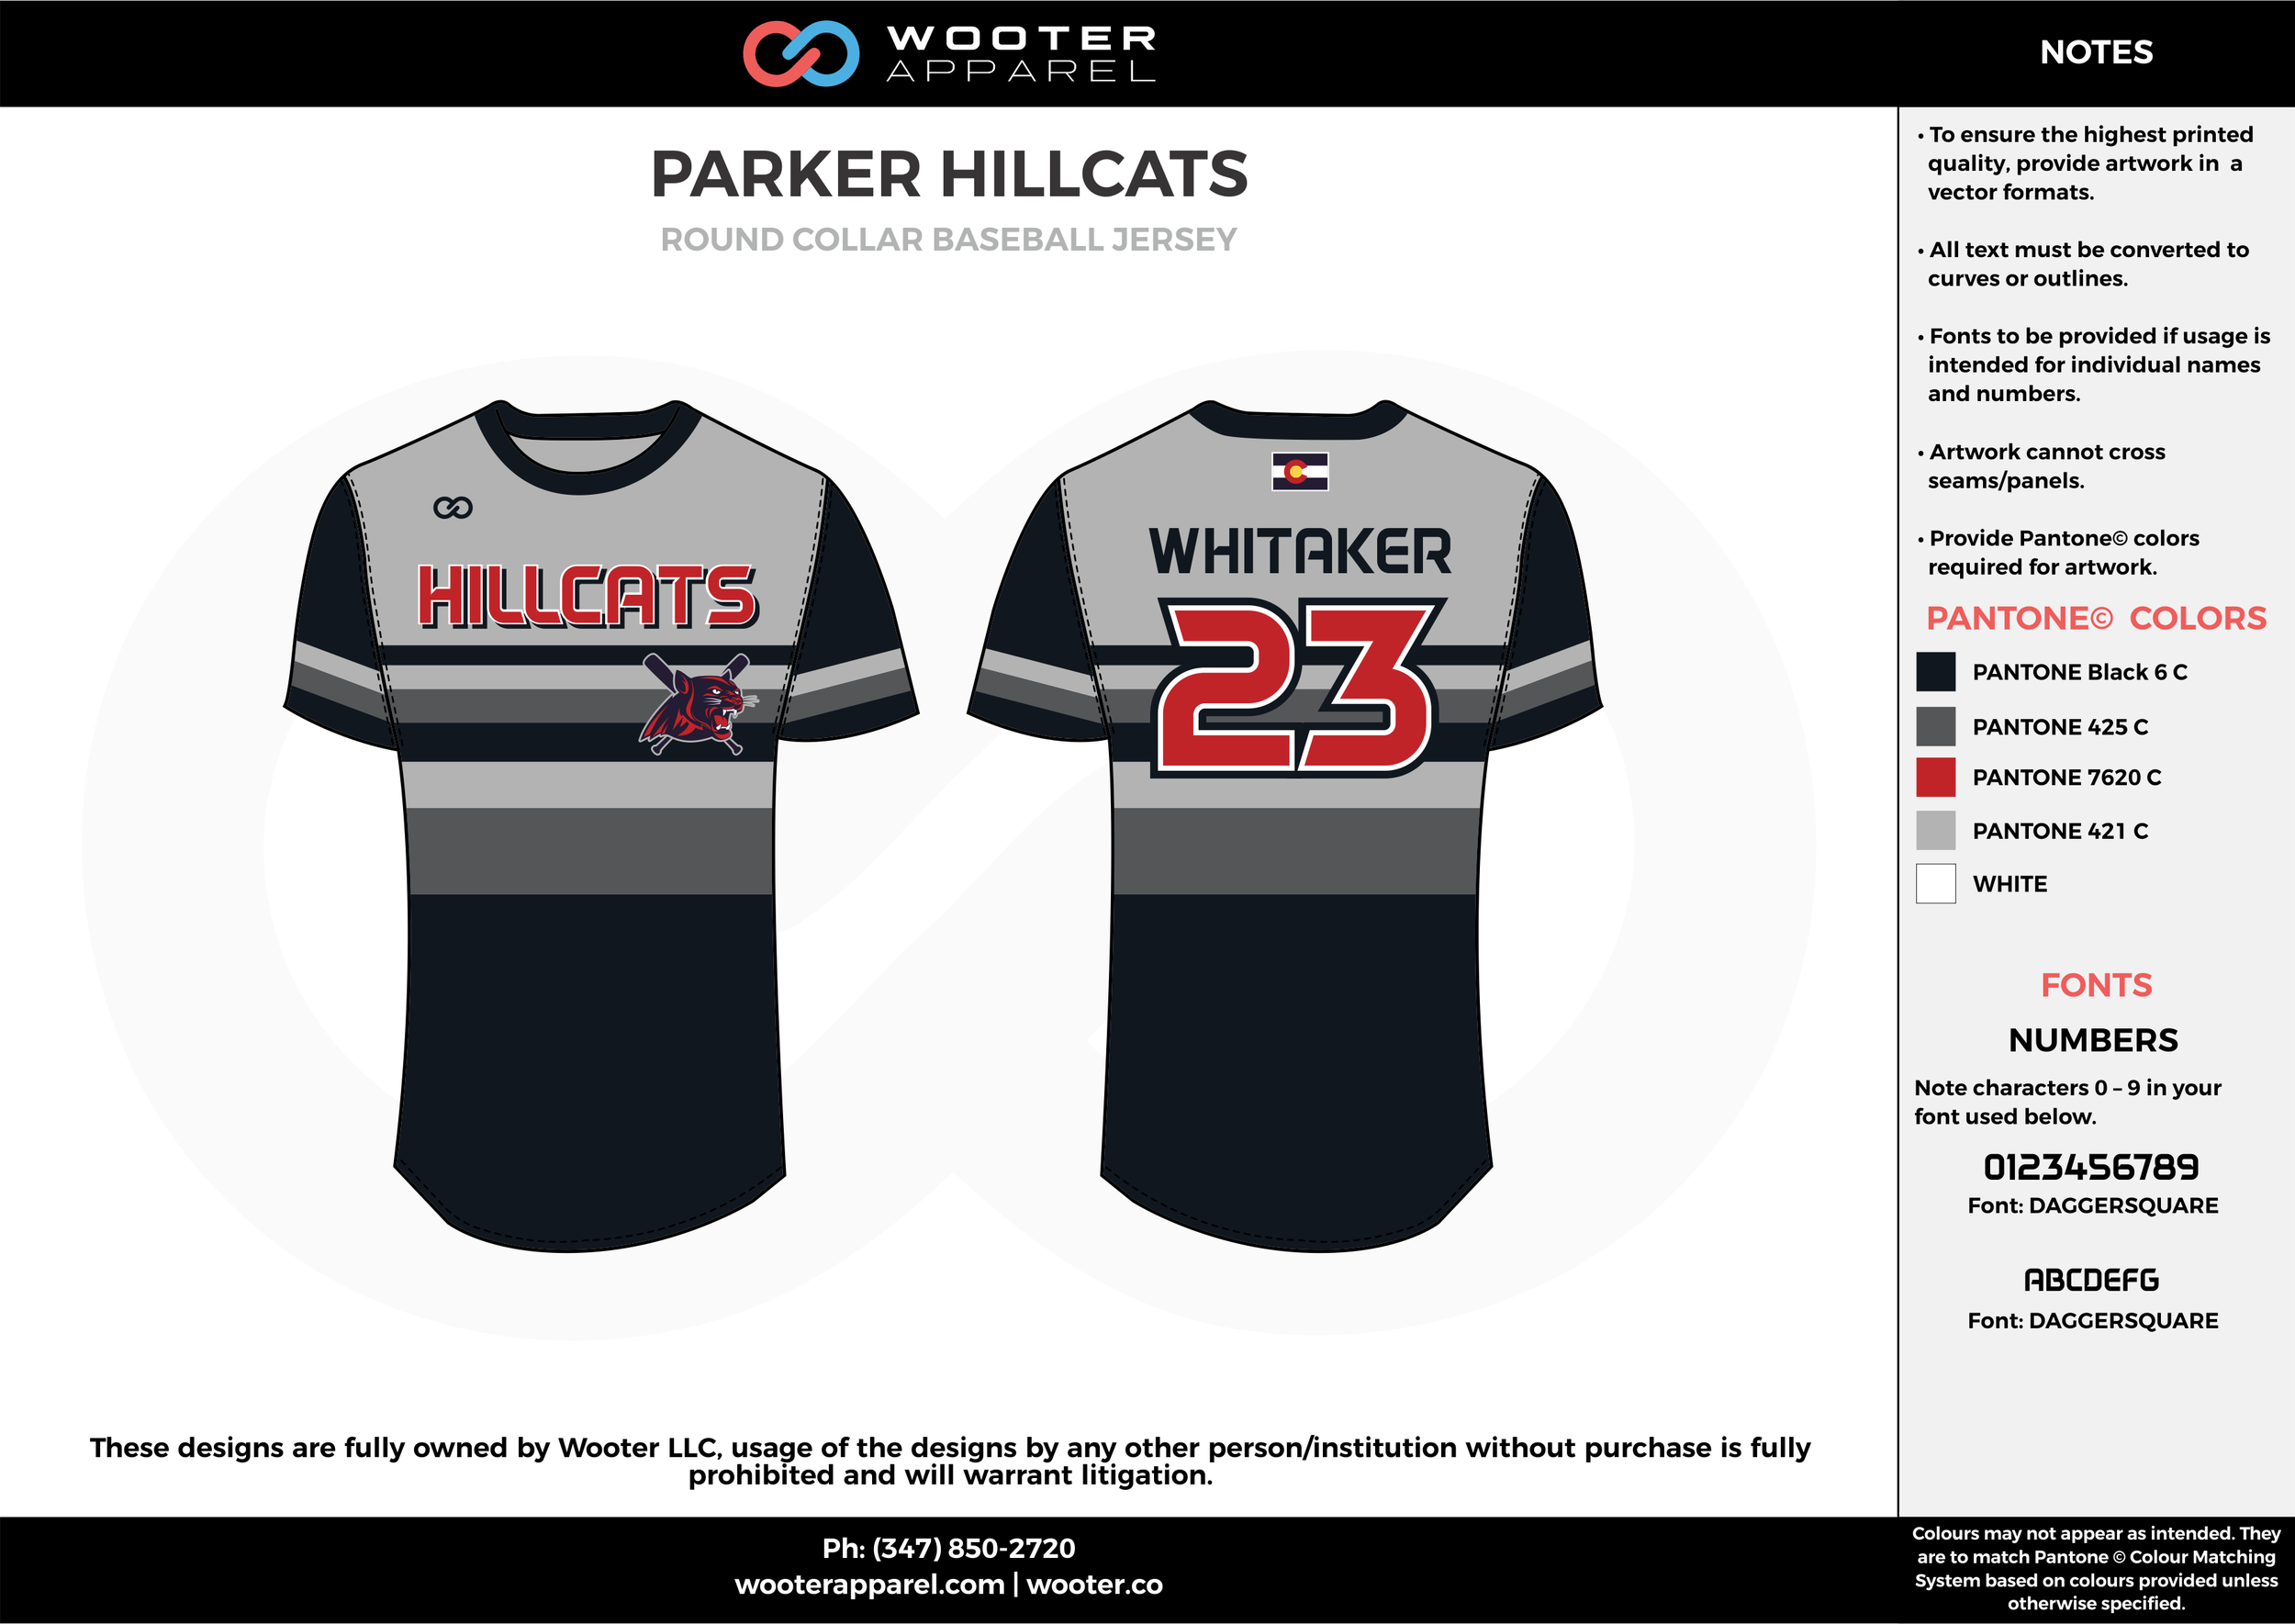 PARKER HILLCATS black gray red white baseball uniforms jerseys tops